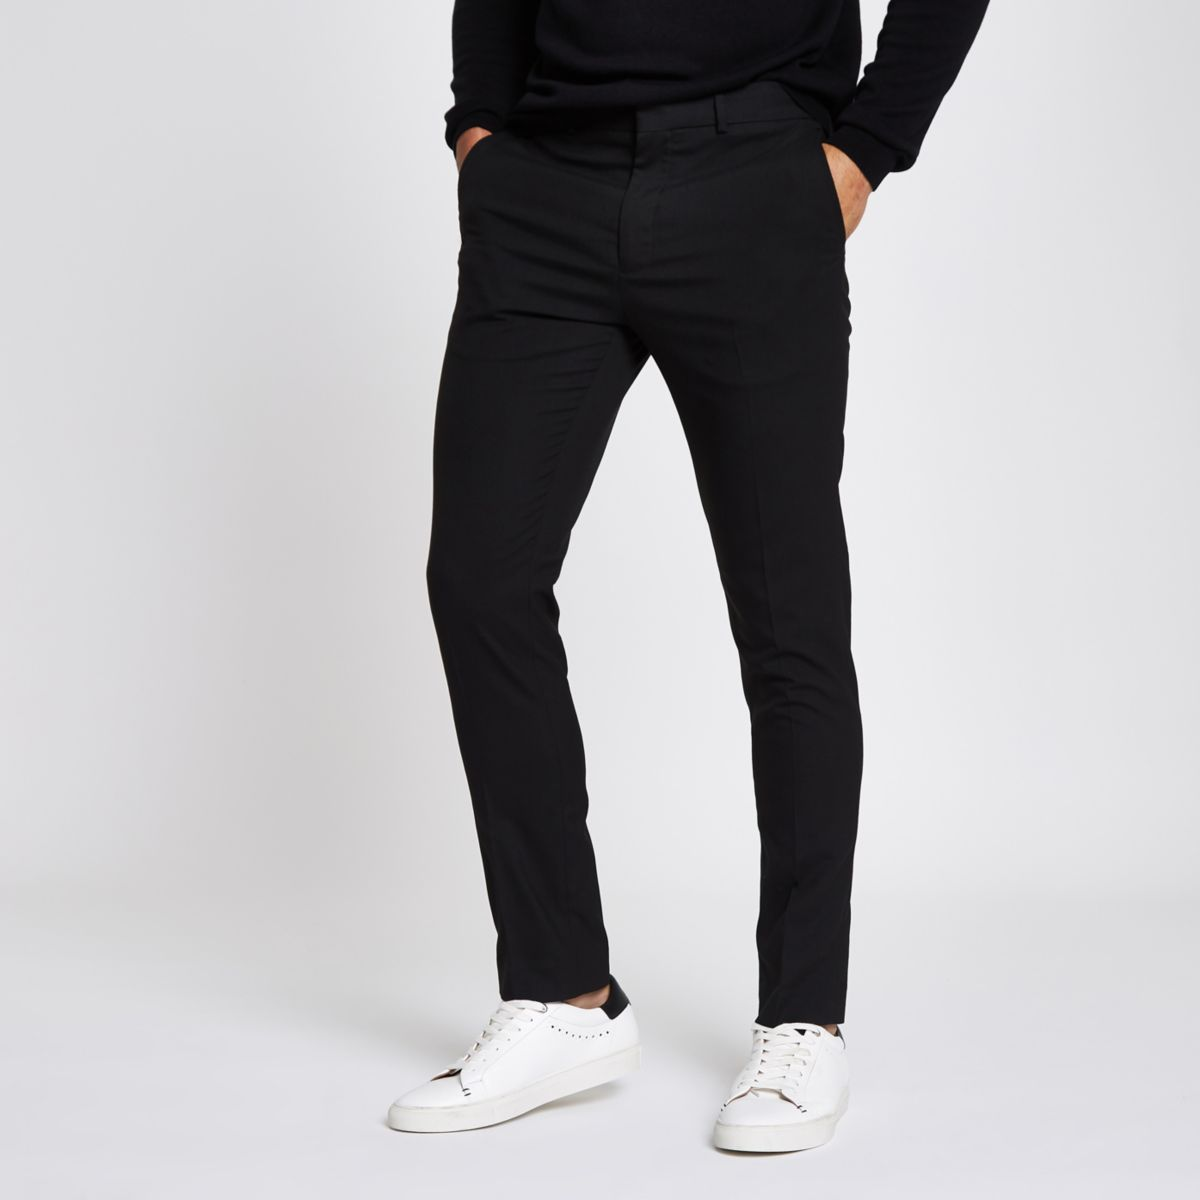 Delve into the latest trends with our men's skinny trousers, designed in a perfect skinny fit. Next day delivery and free returns available.